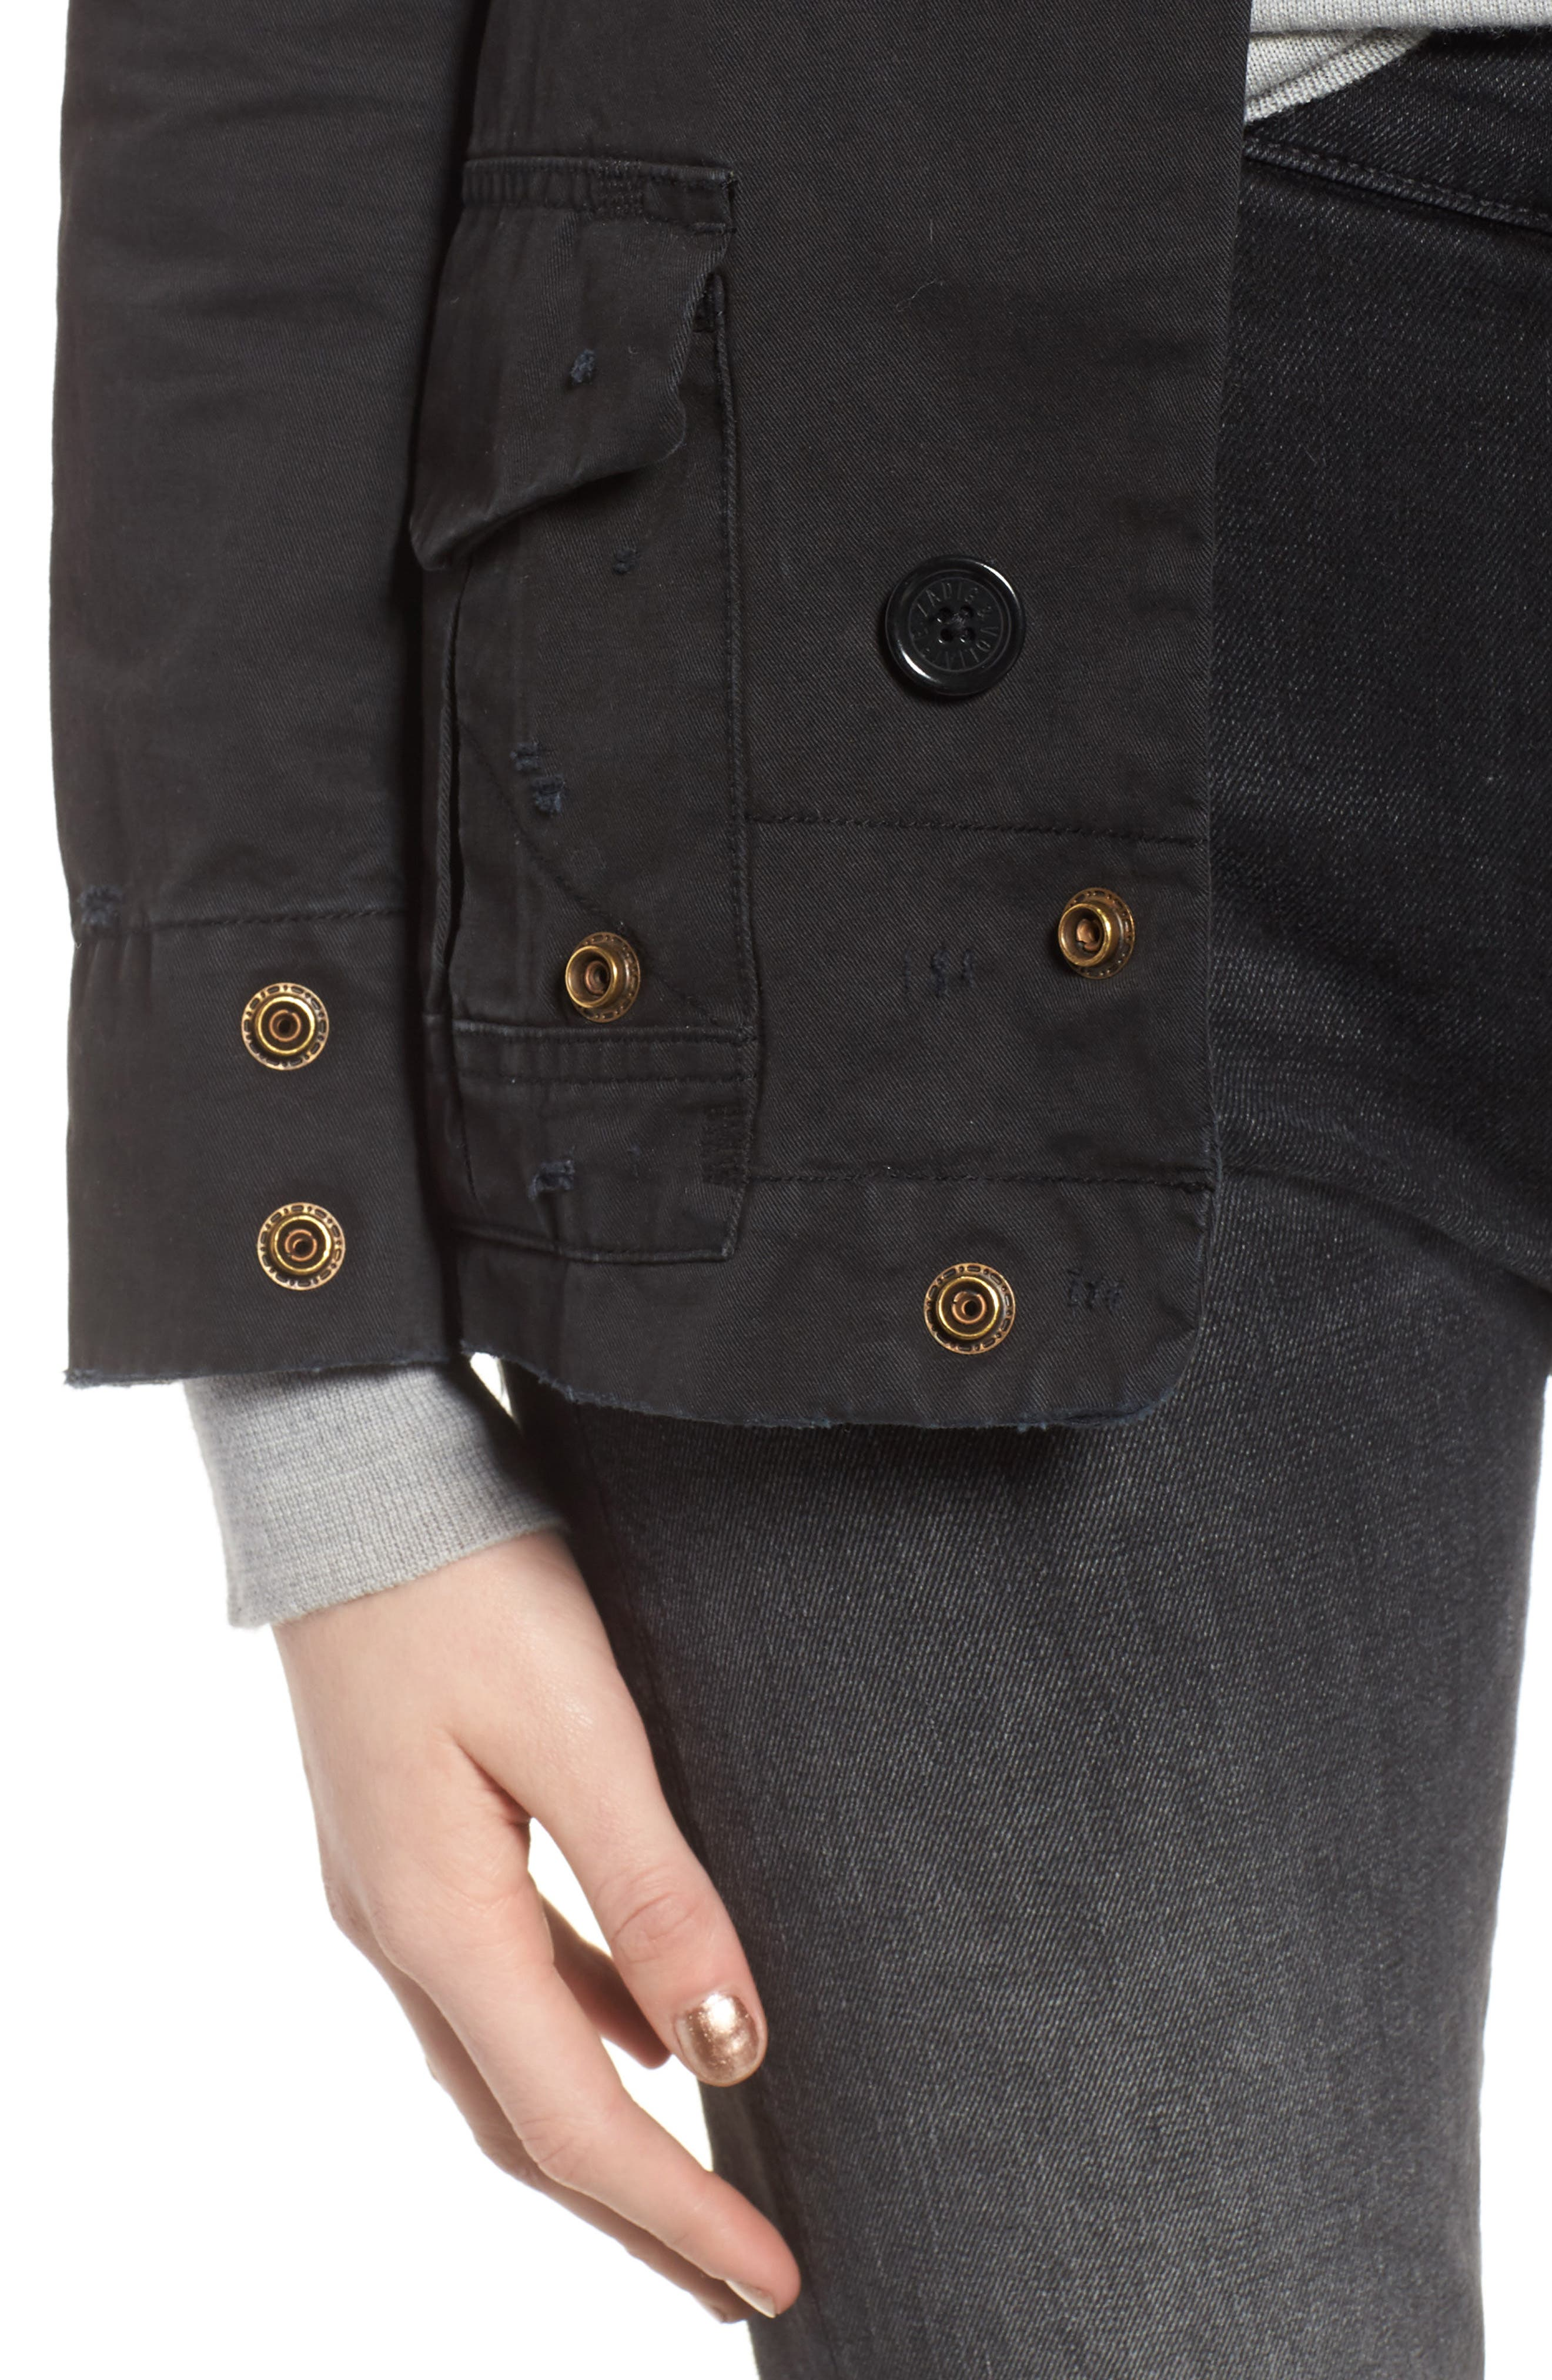 Vladimir Grunge Jacket,                             Alternate thumbnail 4, color,                             Black